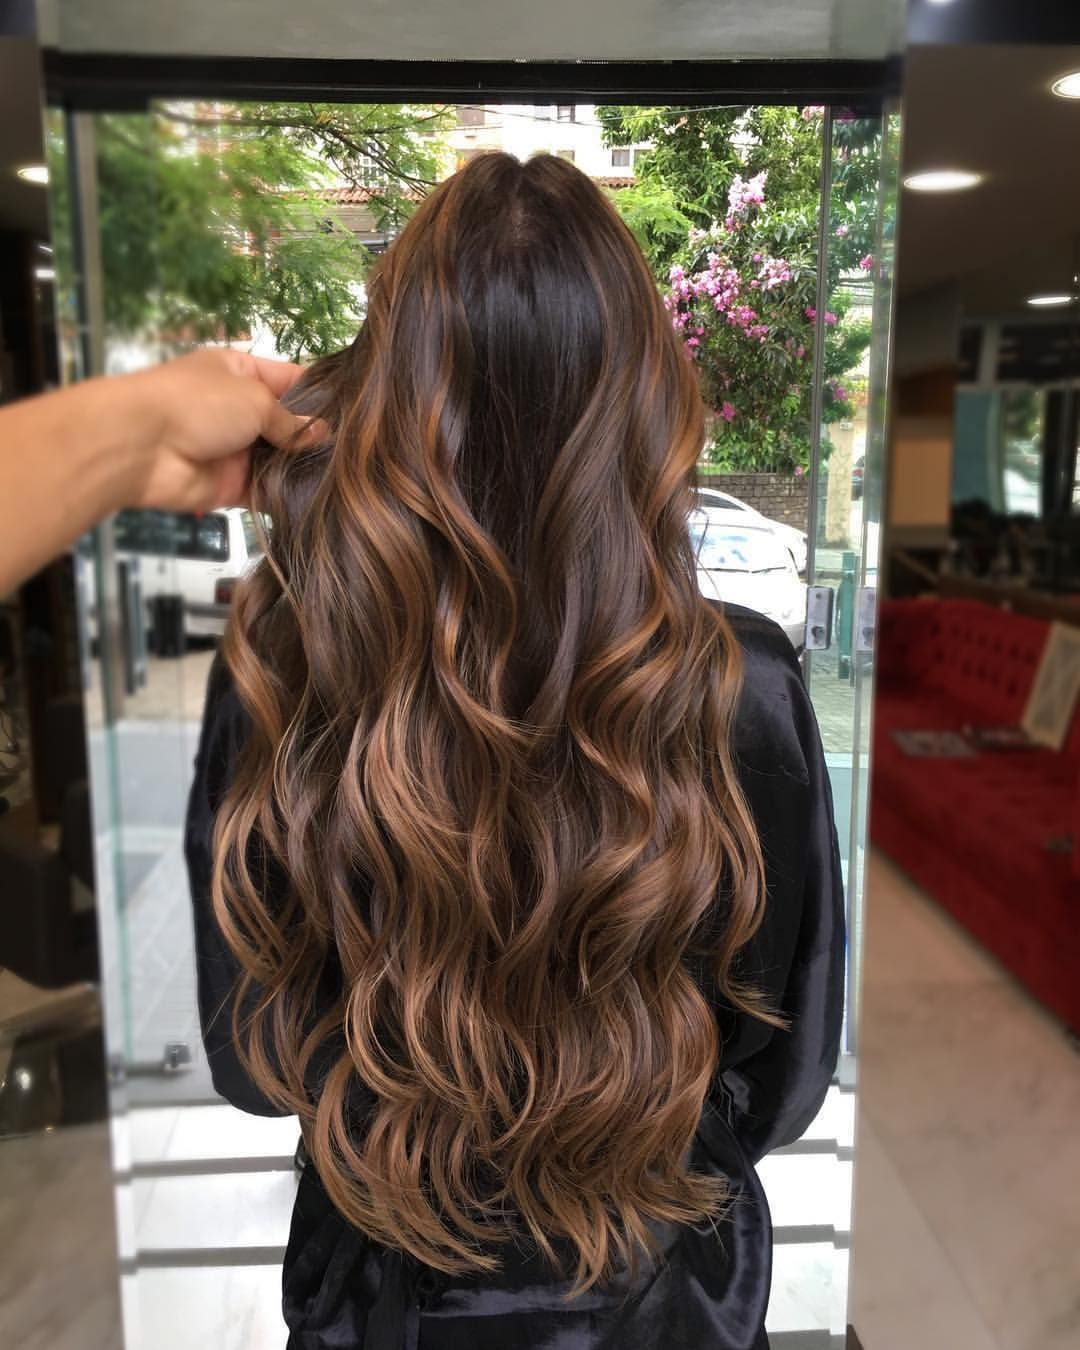 8 Balayage Hair Color Ideas That Are Perfect for Spring